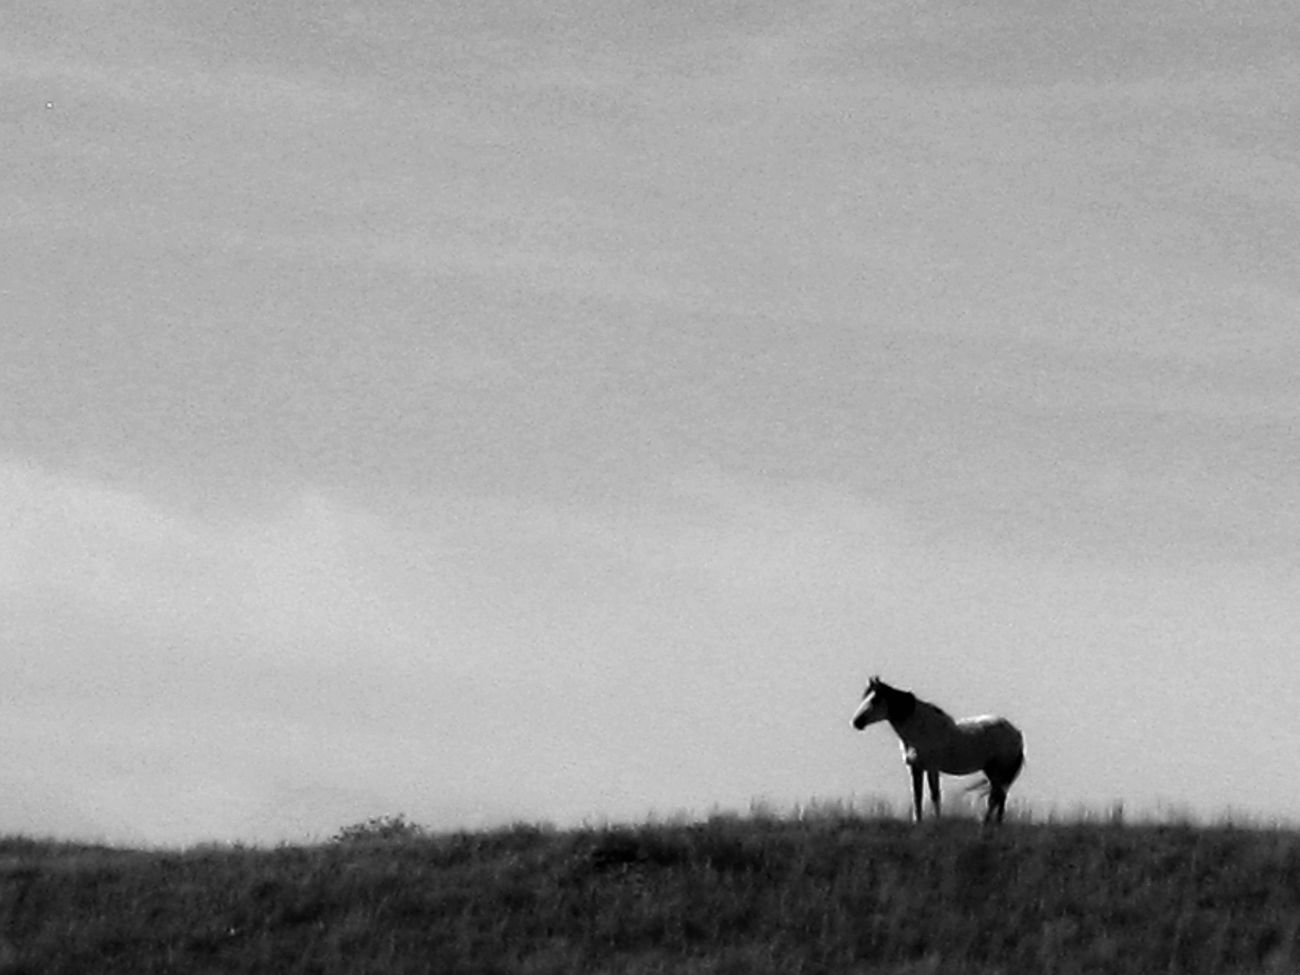 Keeping Watch Blackandwhite Getting Away From It All Horse Keeping Watch Single Object Standing Watching Wild Horse America Wild West